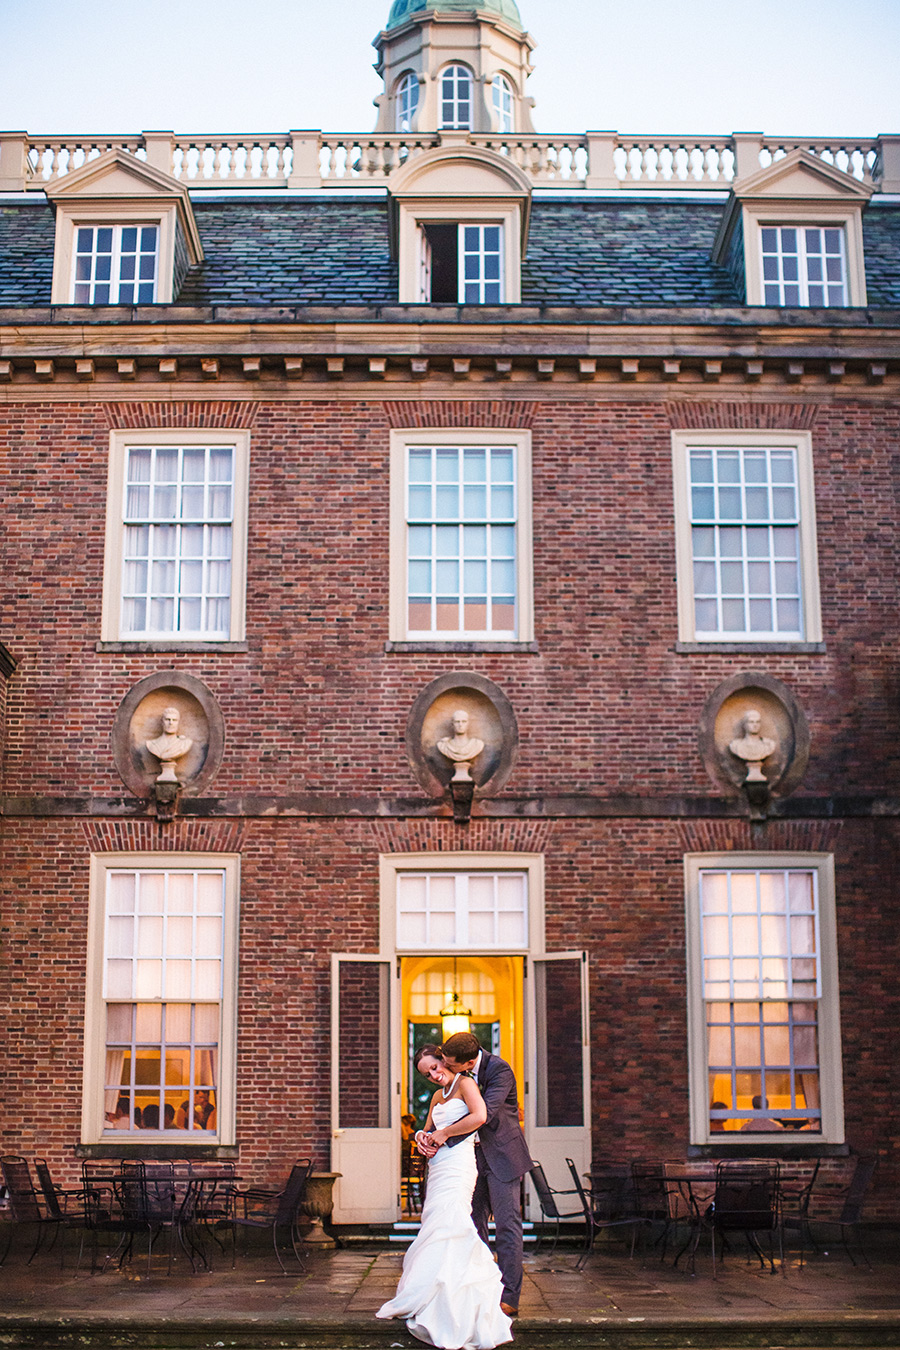 Genevieve & Brett's Beautiful wedding at the crane estate in ipswich, ma during sunset